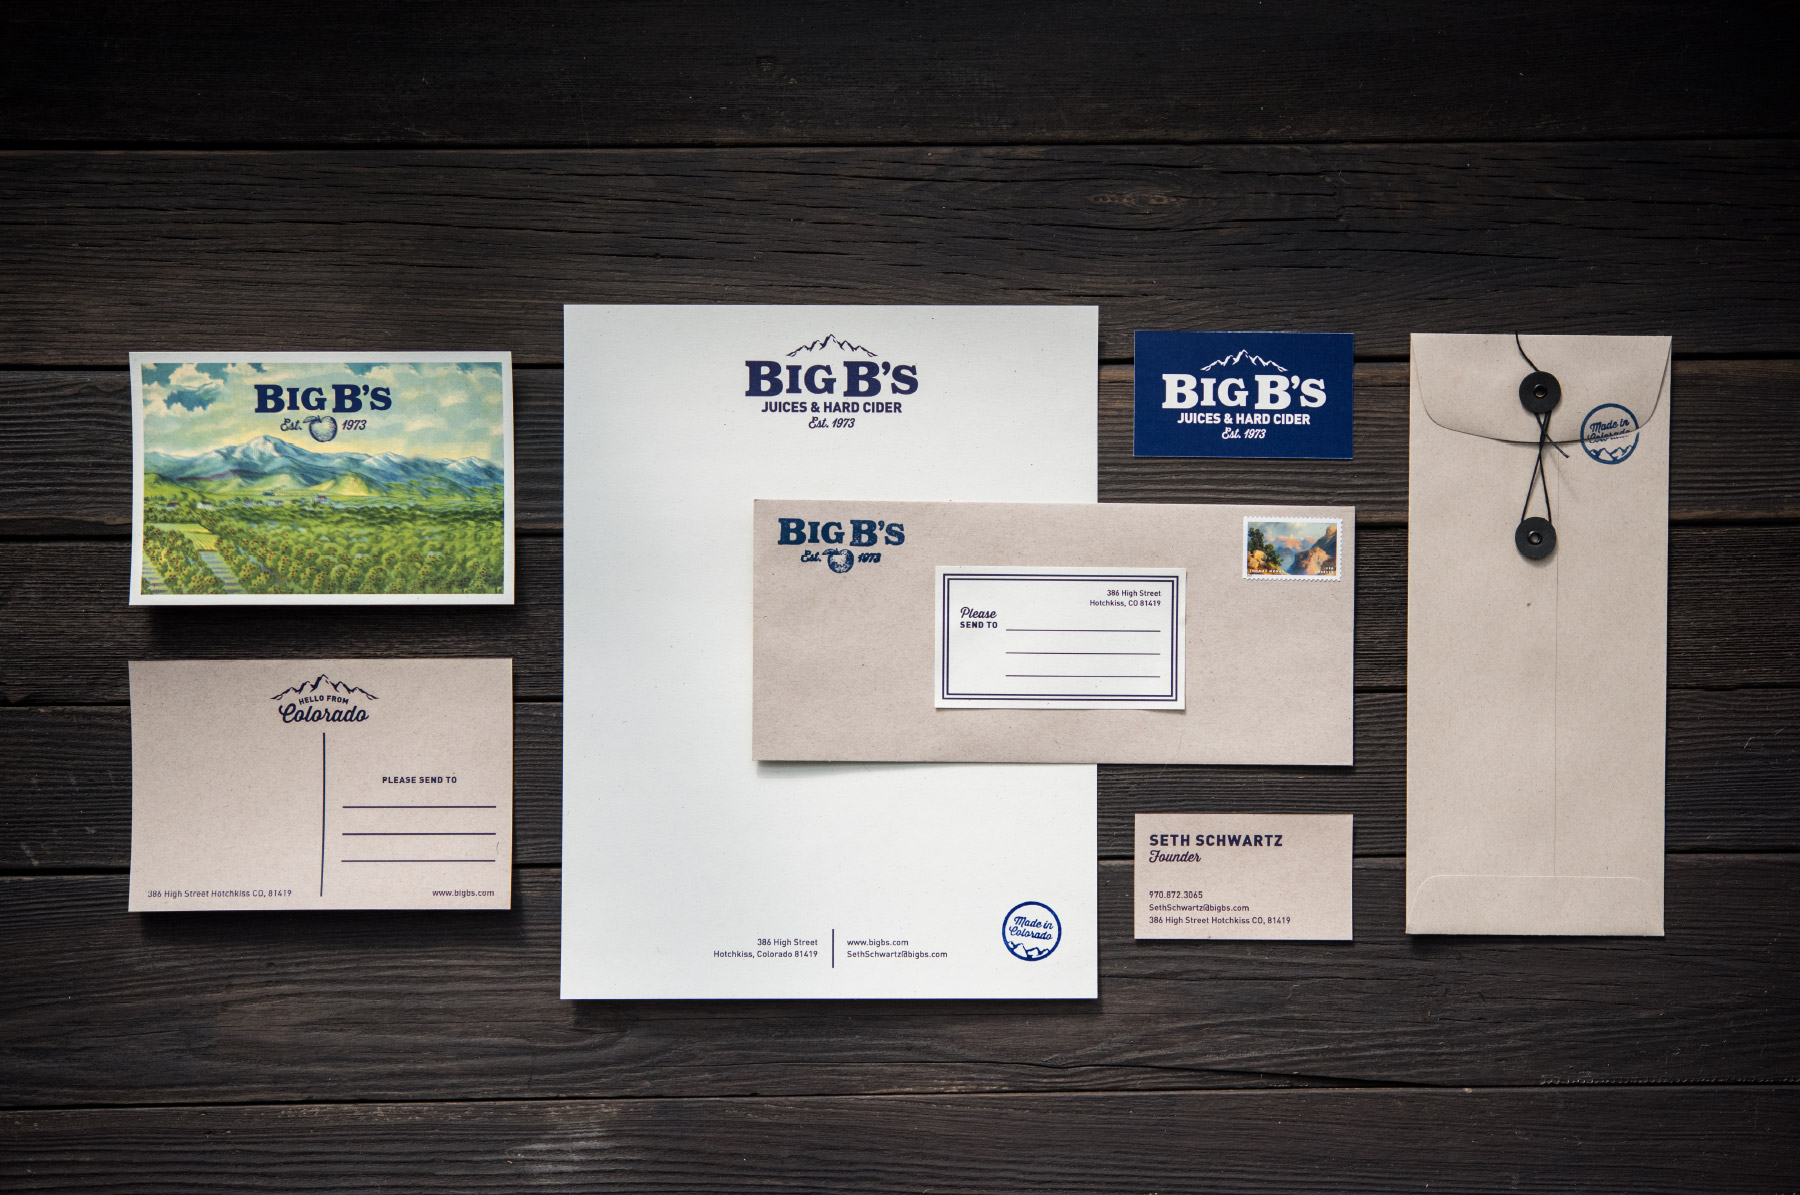 Time-honored rustic, branding stationery